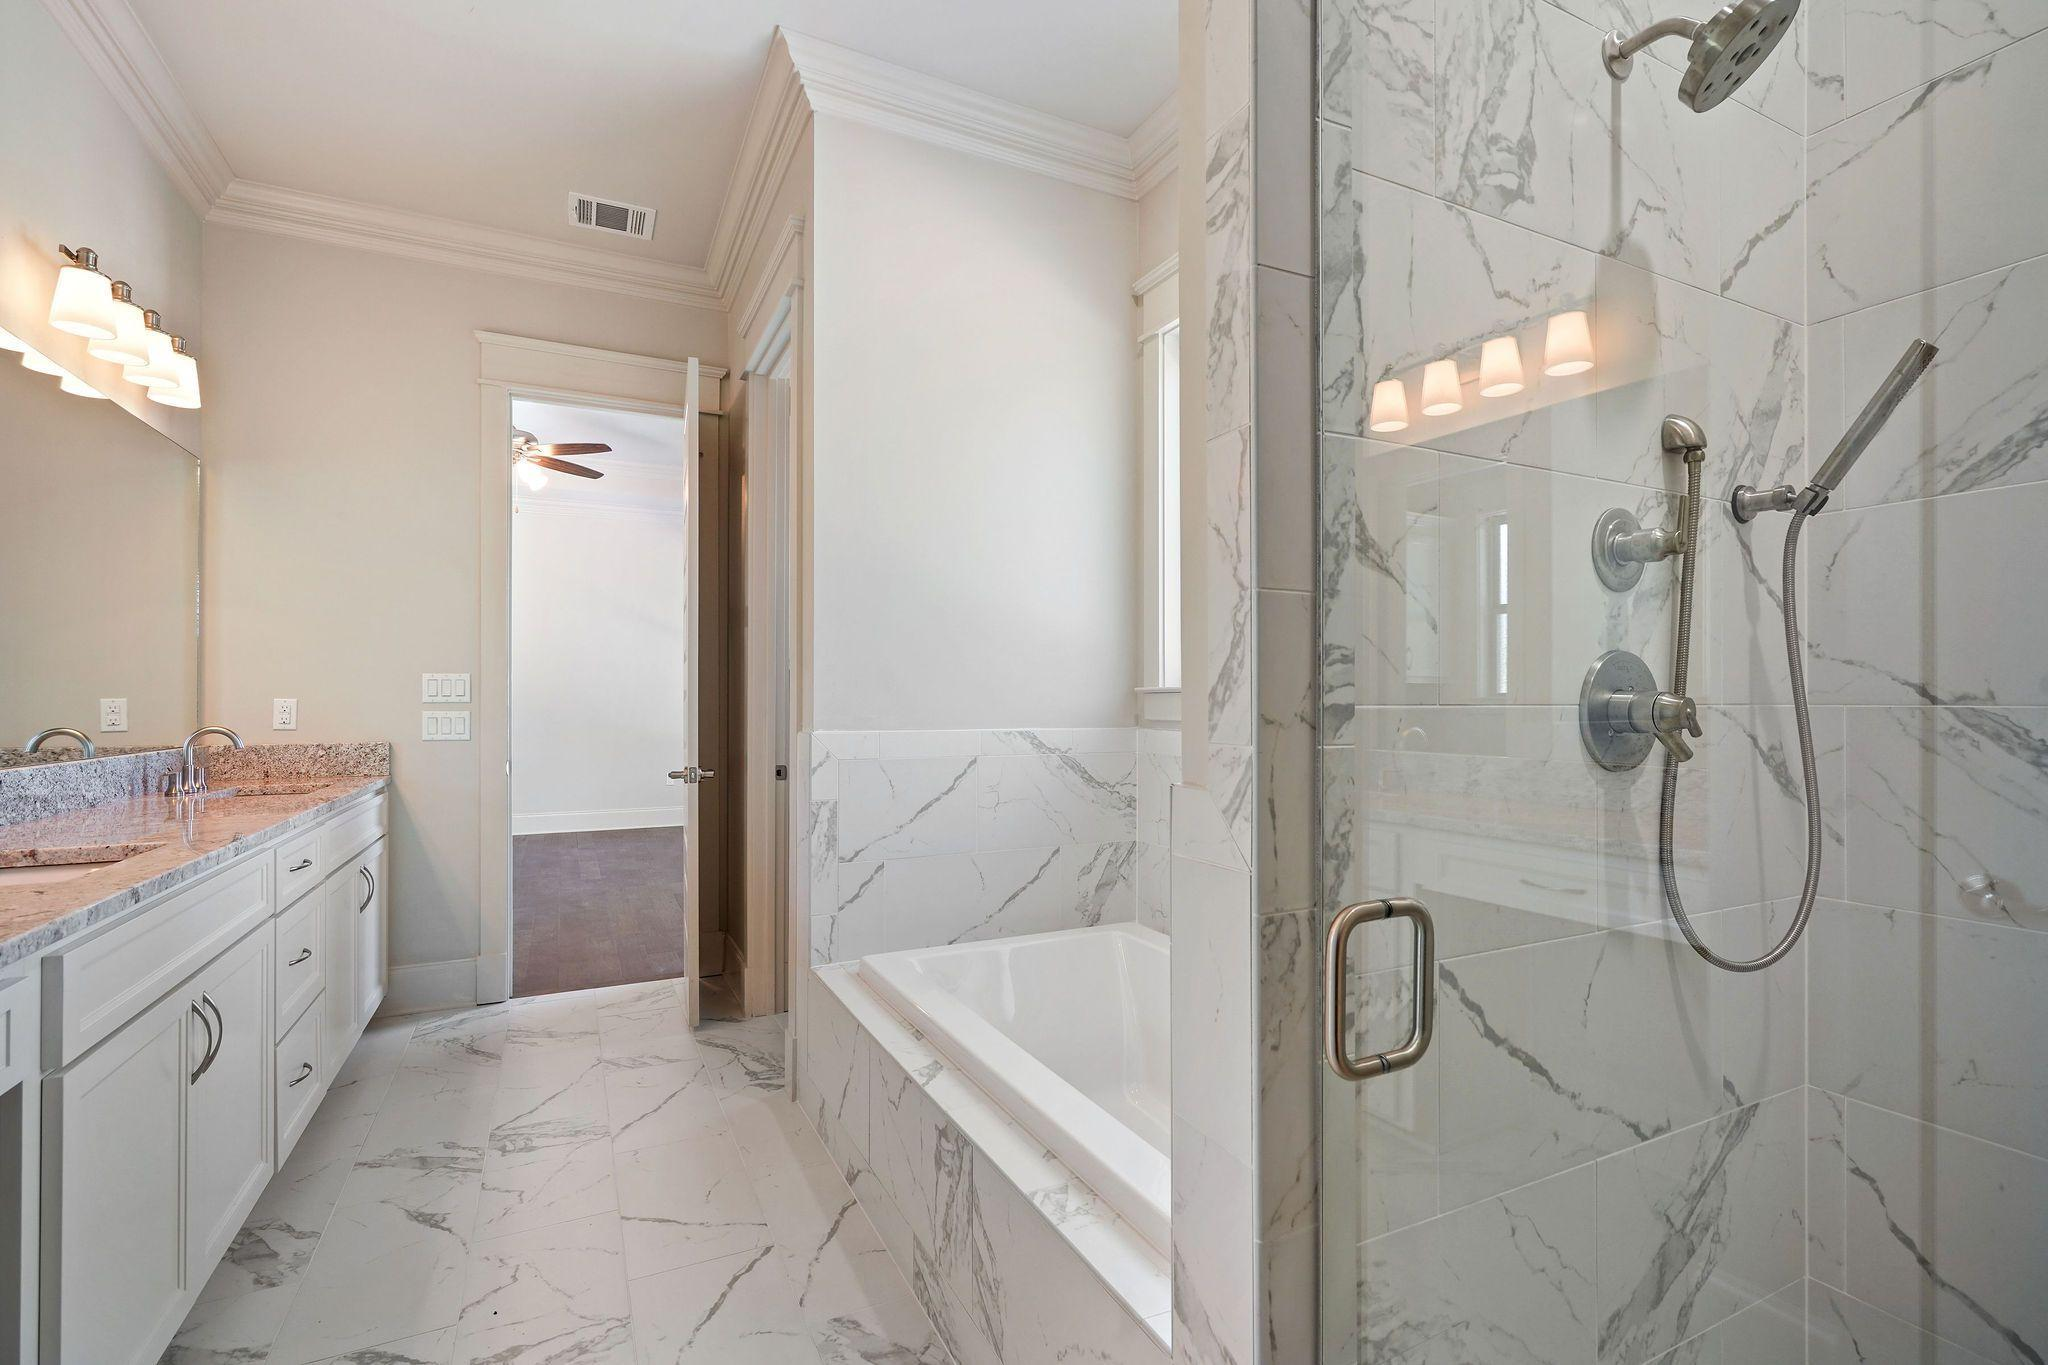 Bathroom featured in the AUDUBON AH44 By Audubon Homes in New Orleans, LA